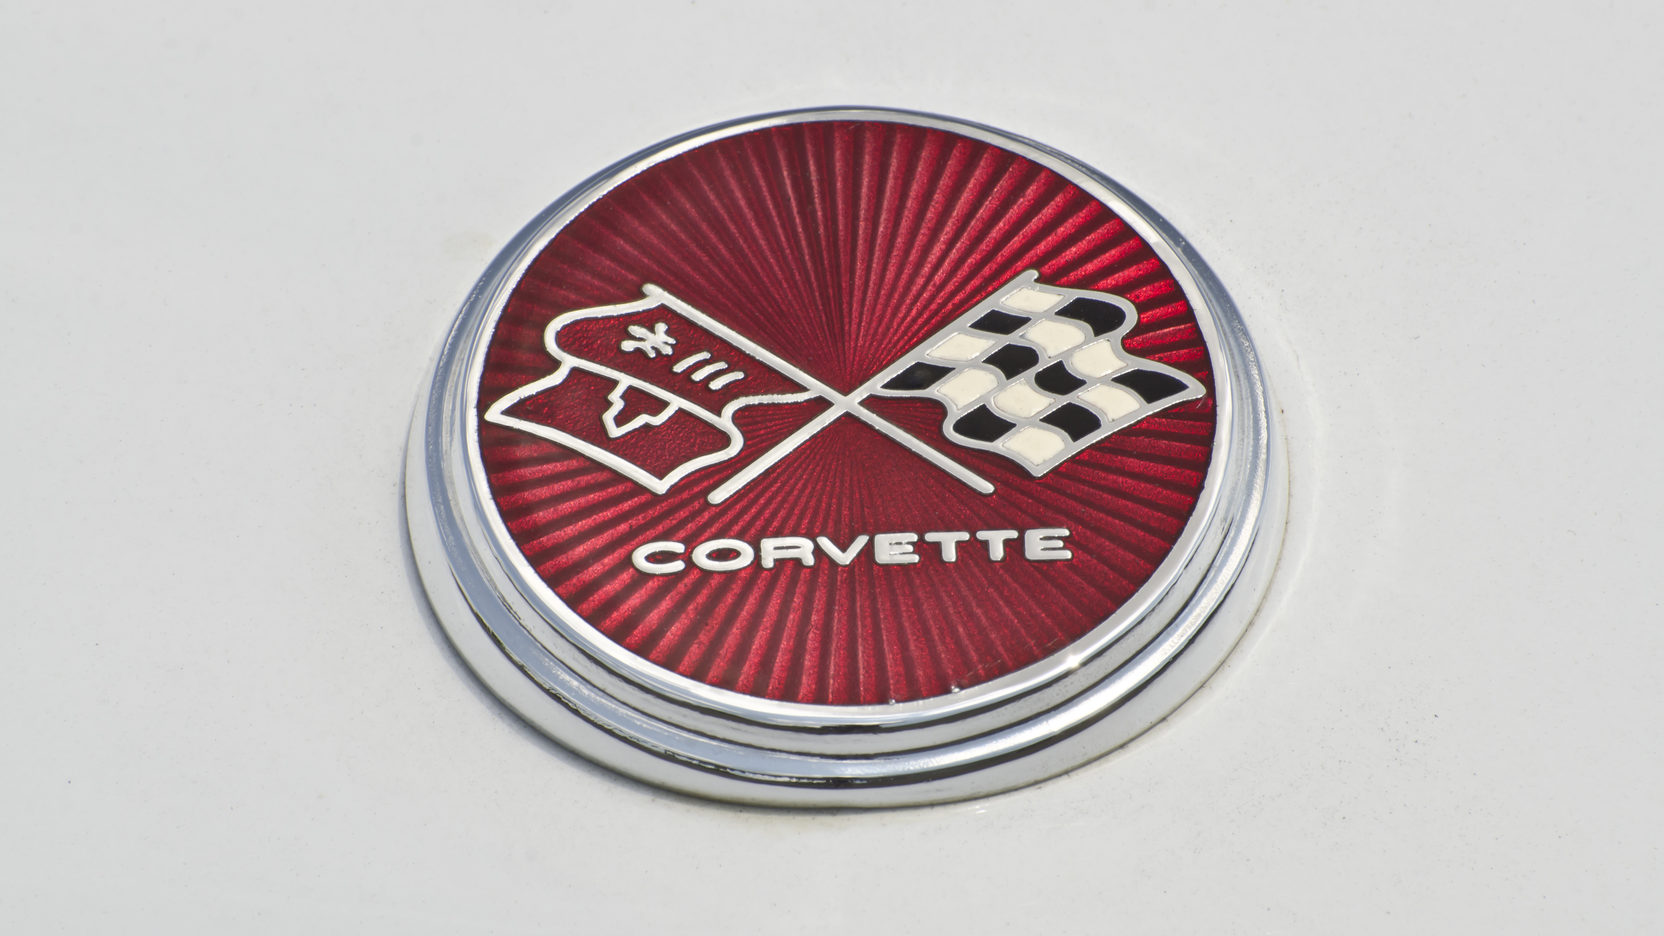 1976 Chevrolet Corvette badge